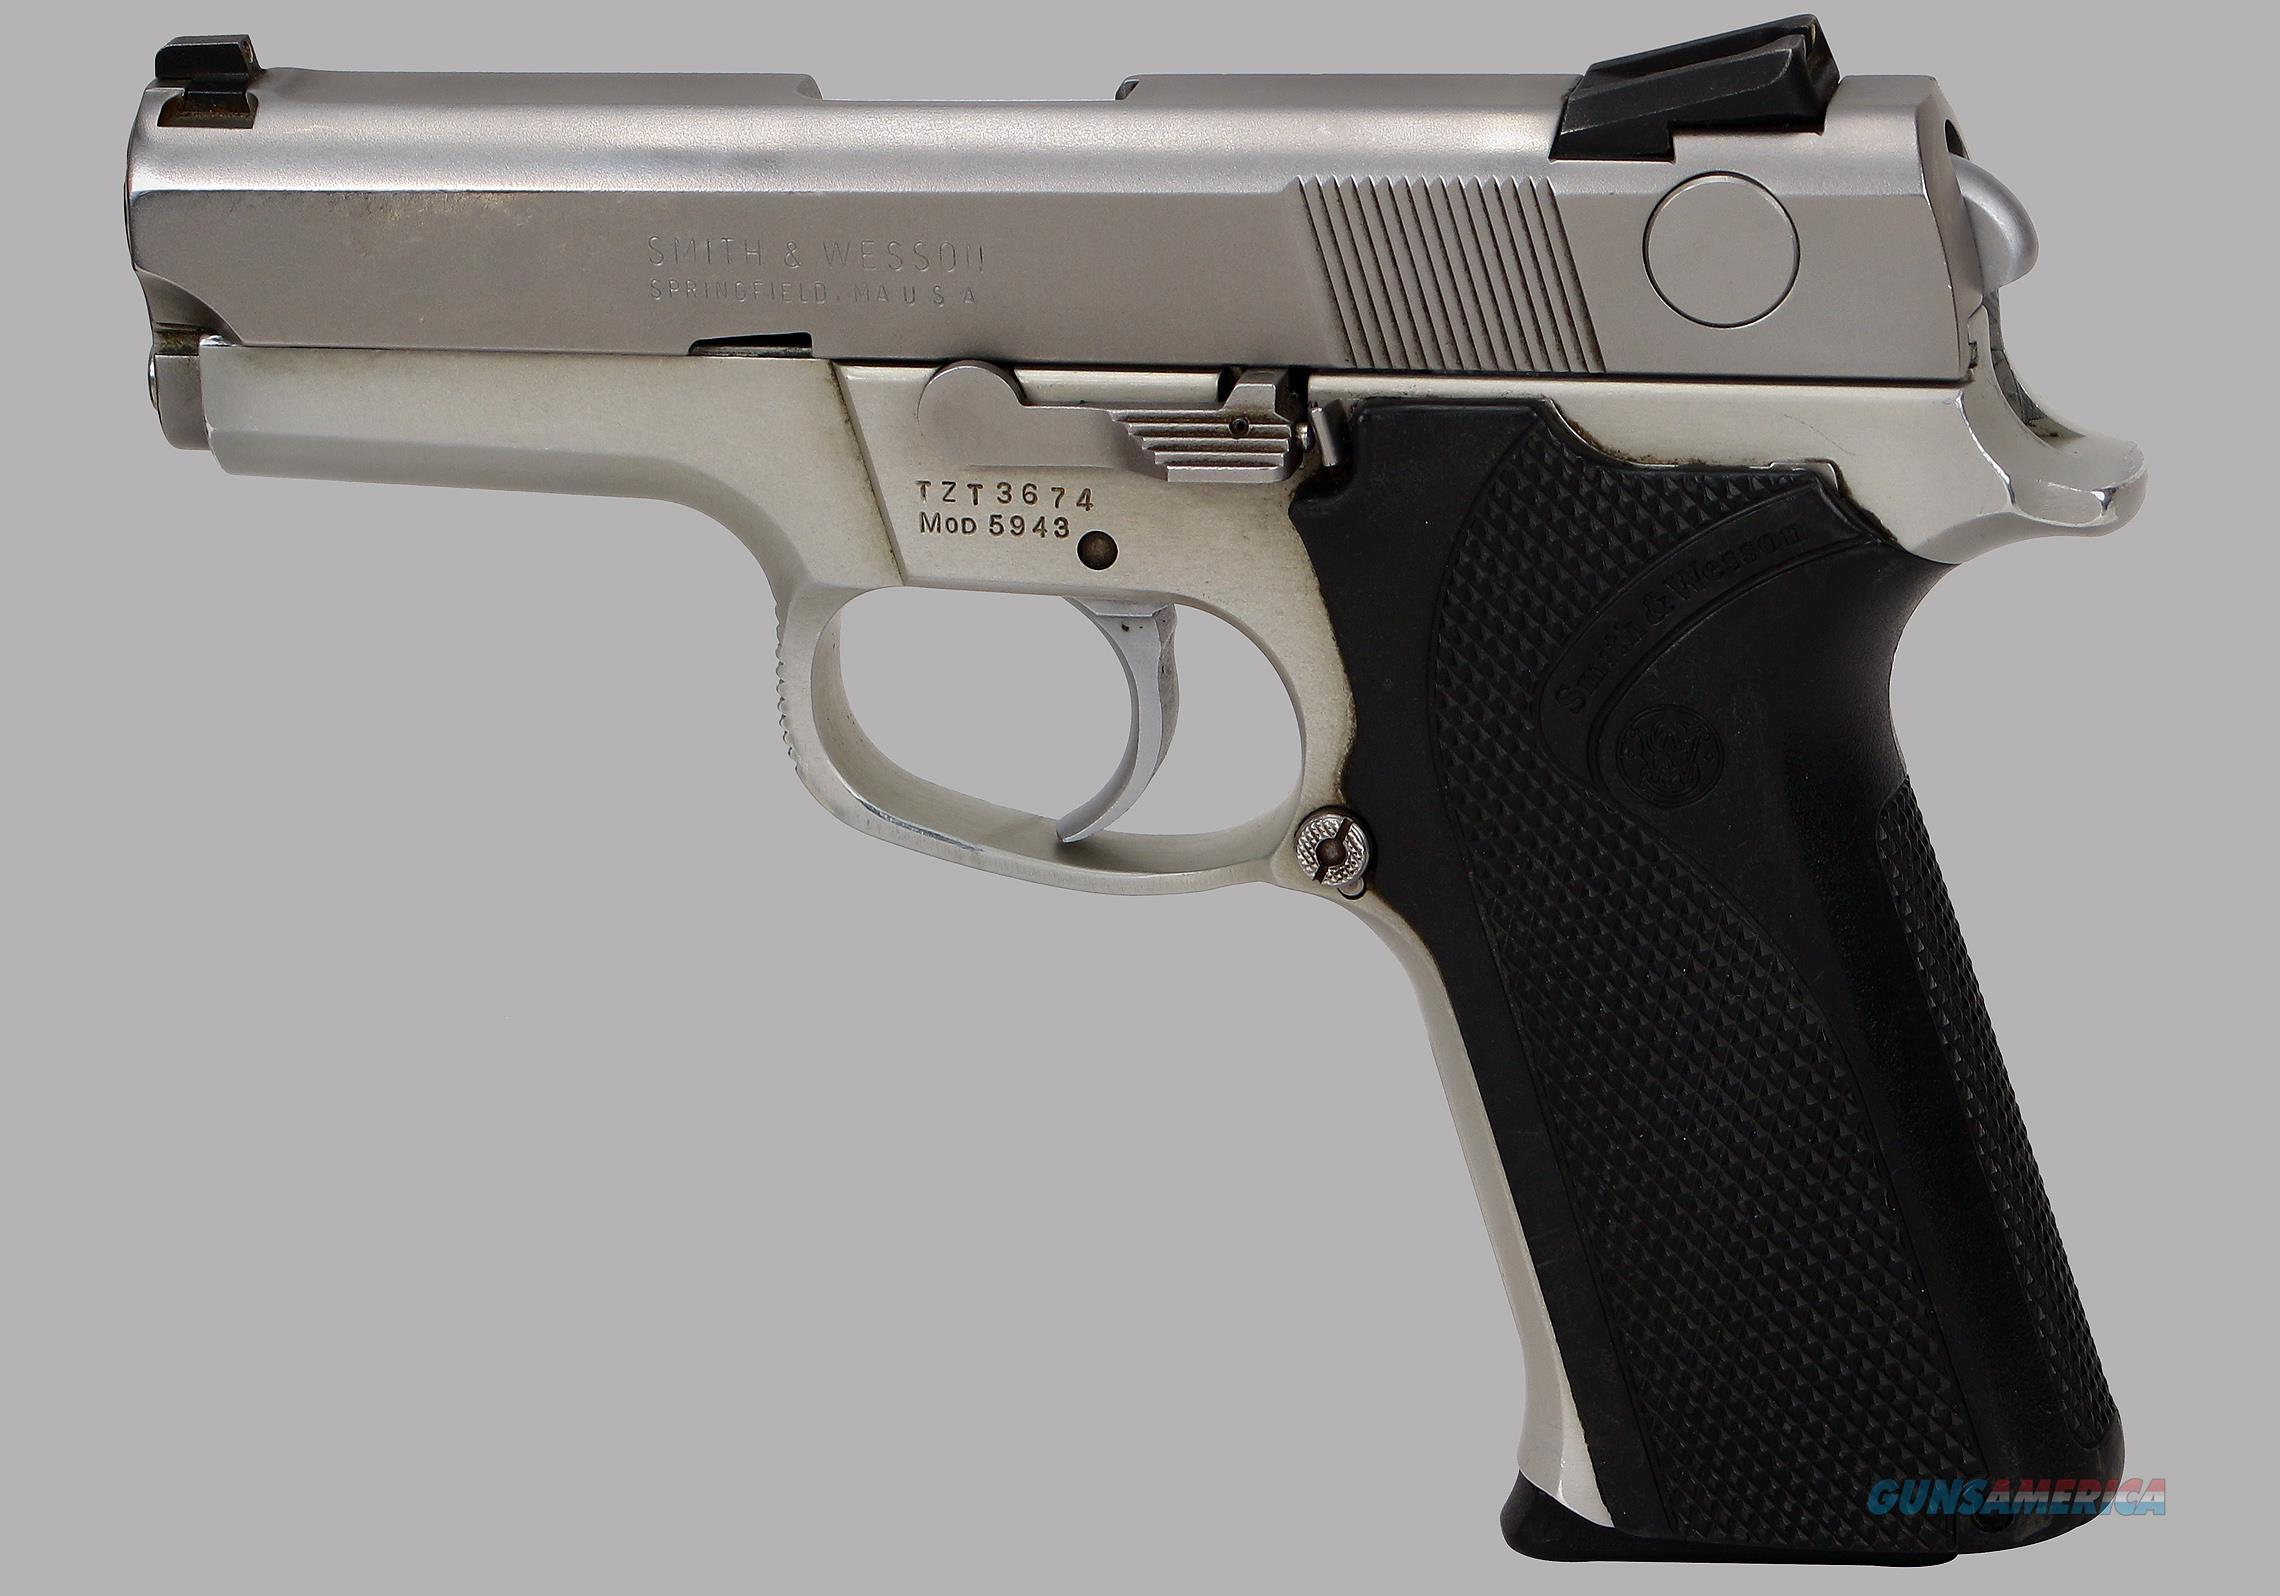 Smith & Wesson 9mm Model 5943 Pistol  Guns > Pistols > Smith & Wesson Pistols - Autos > Steel Frame